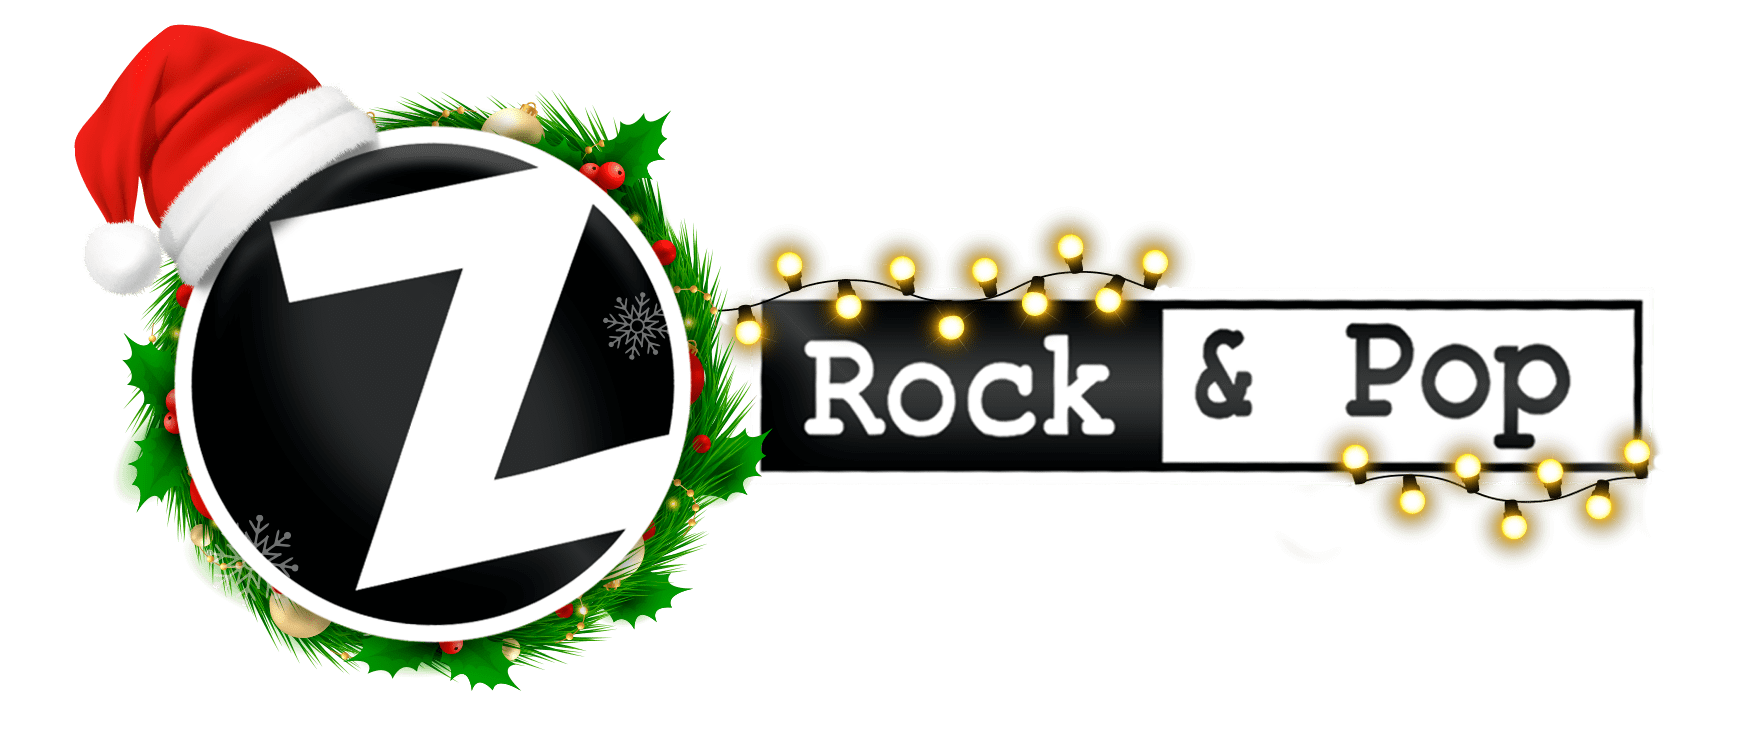 Radio Z Rock & Pop